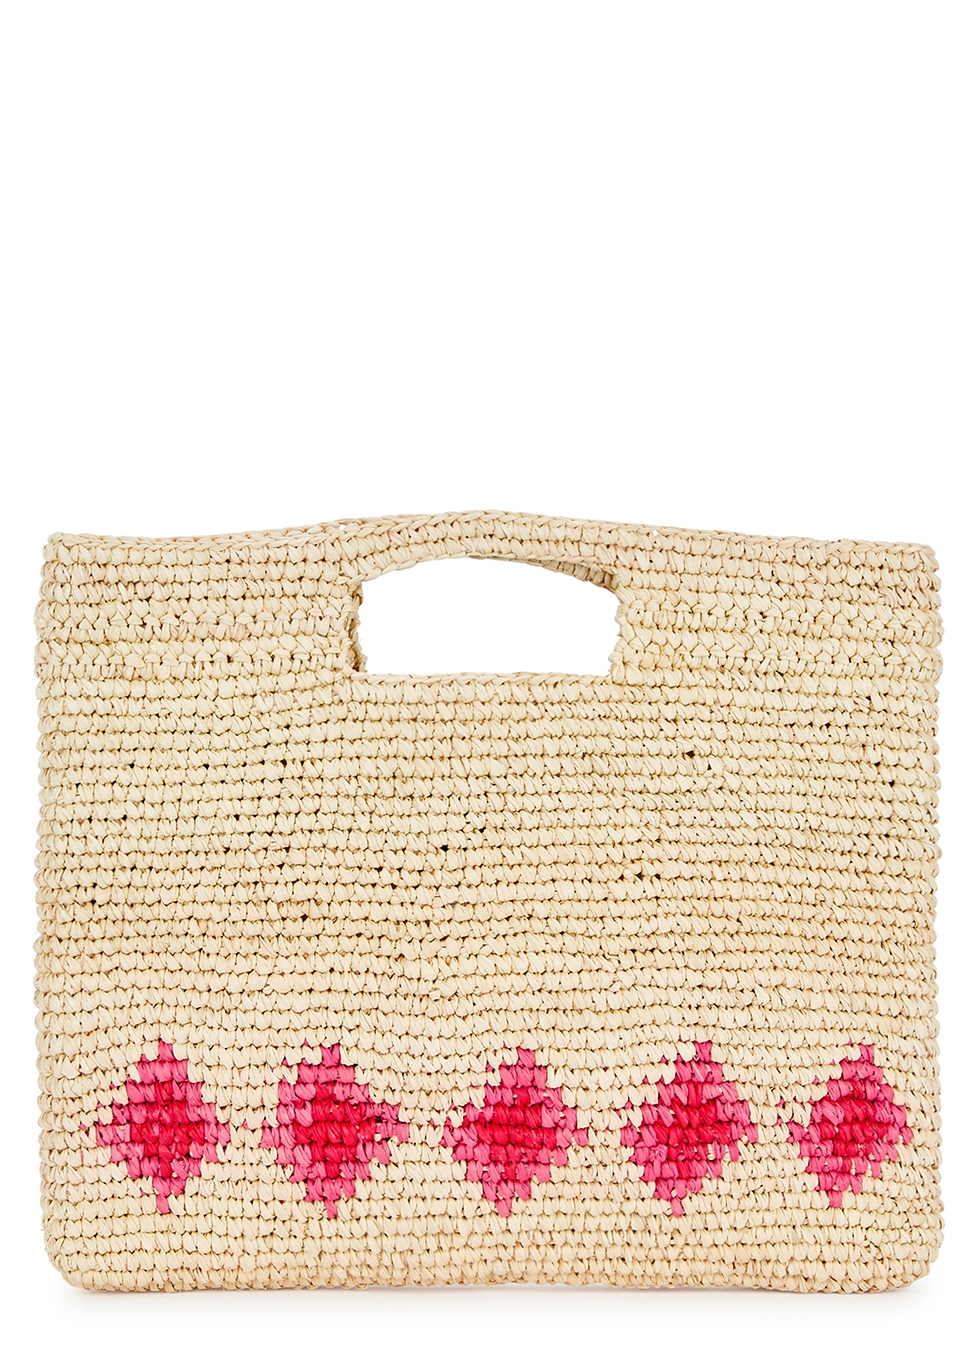 Celina Sand Straw Tote in Red